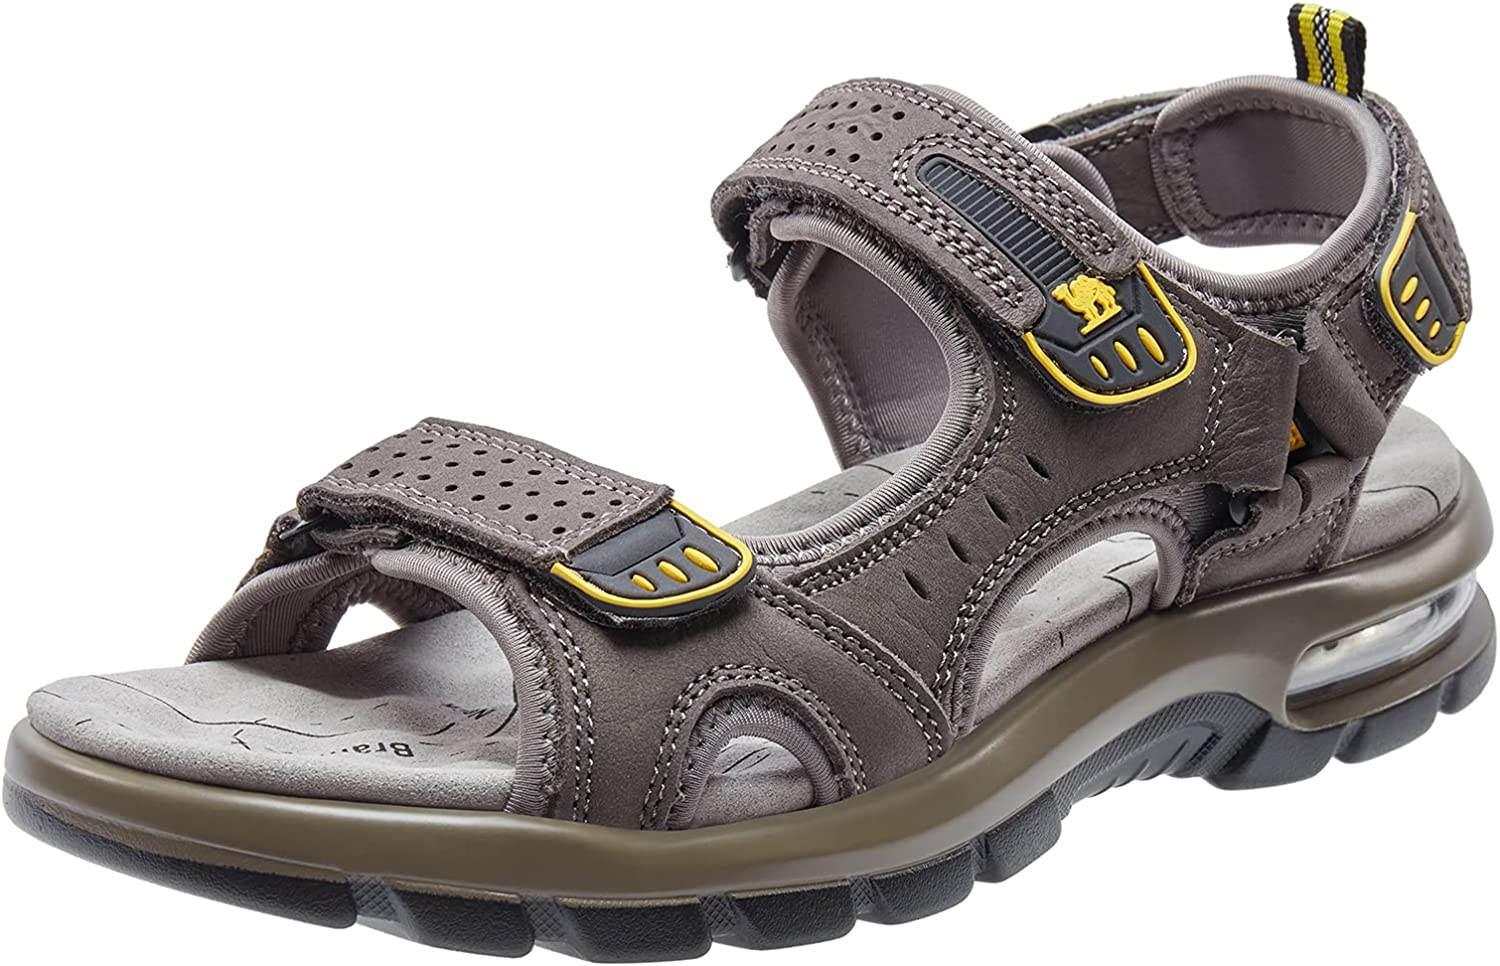 CAMEL CROWN Men's Leather Sandals Hiking Beach for Same day shipping Tread Walking High quality